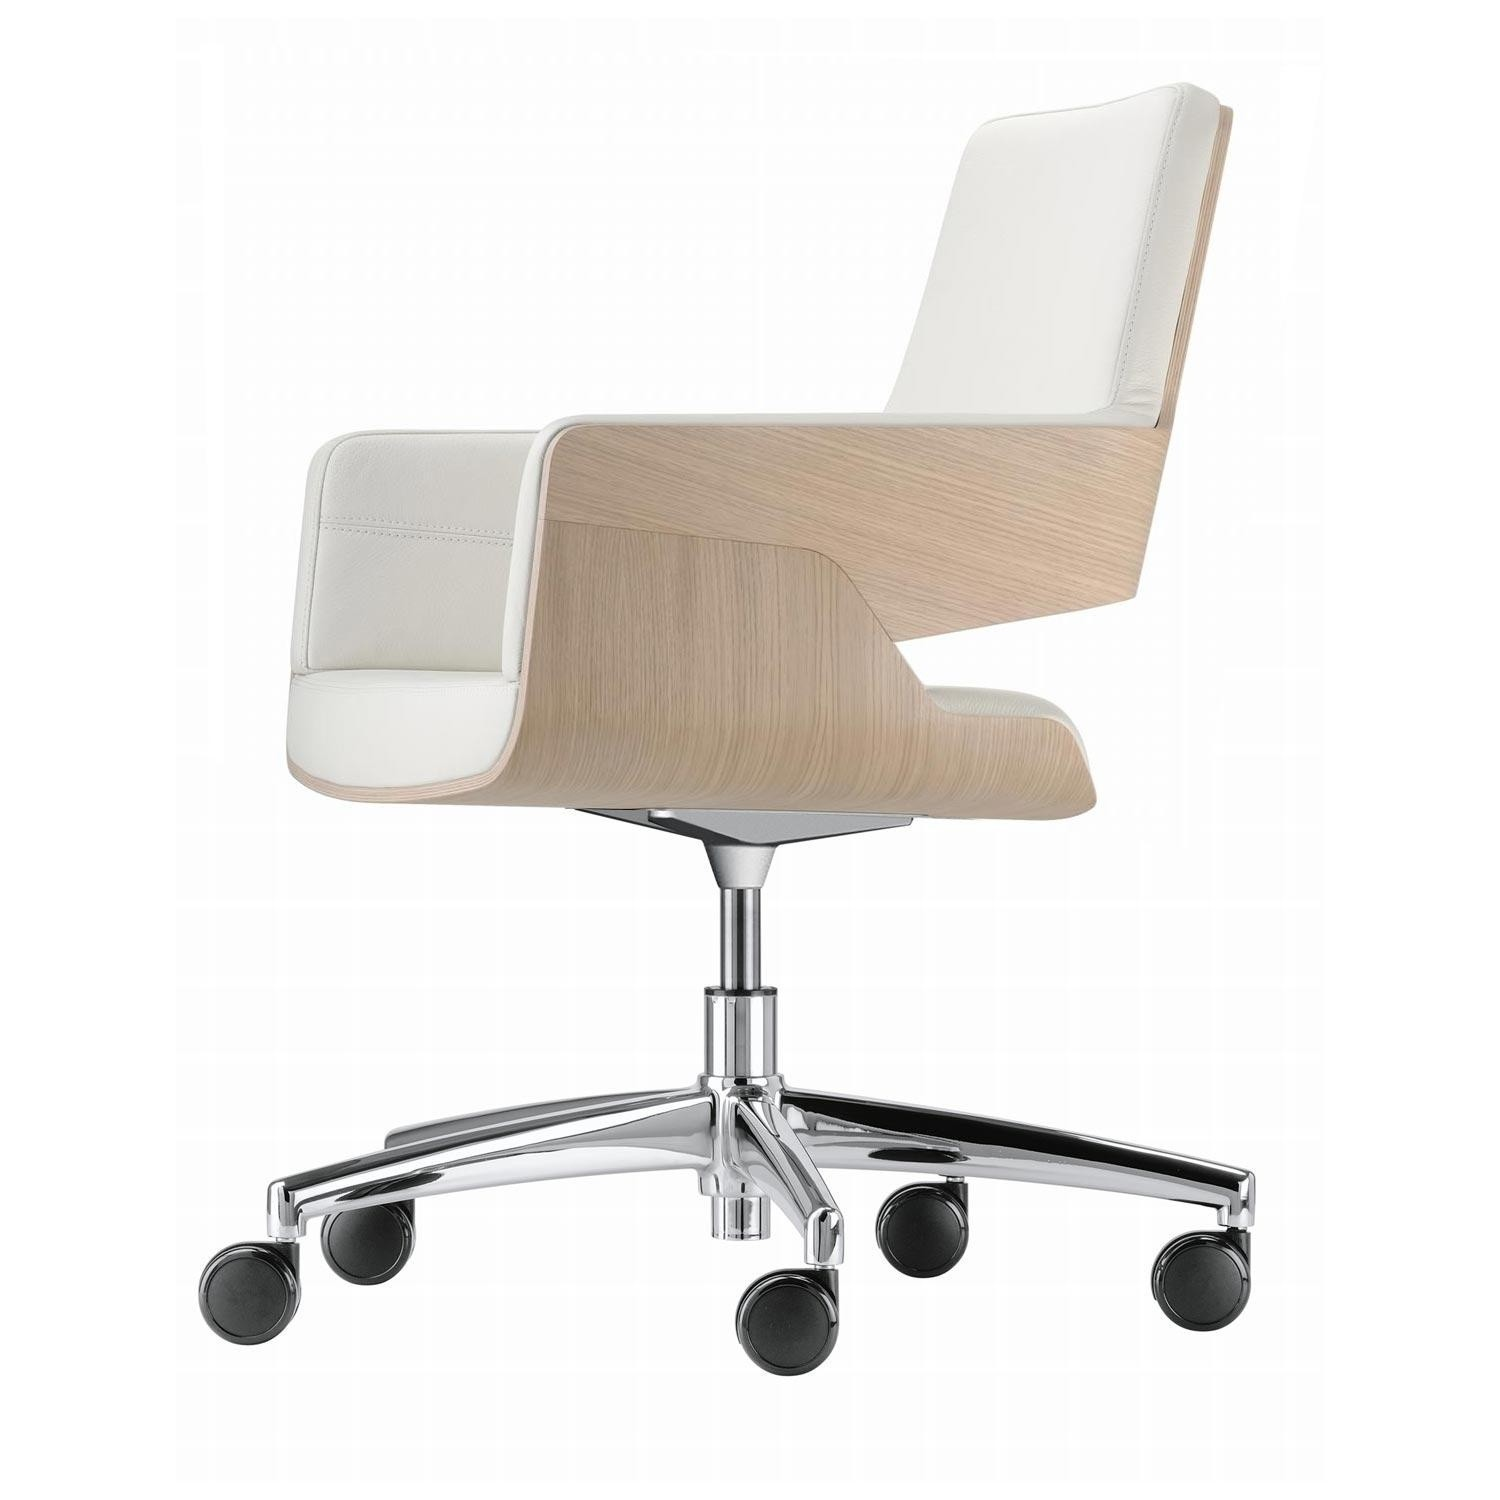 Thonet With Office Wheels 845 Drw S Chair SVMUzpq